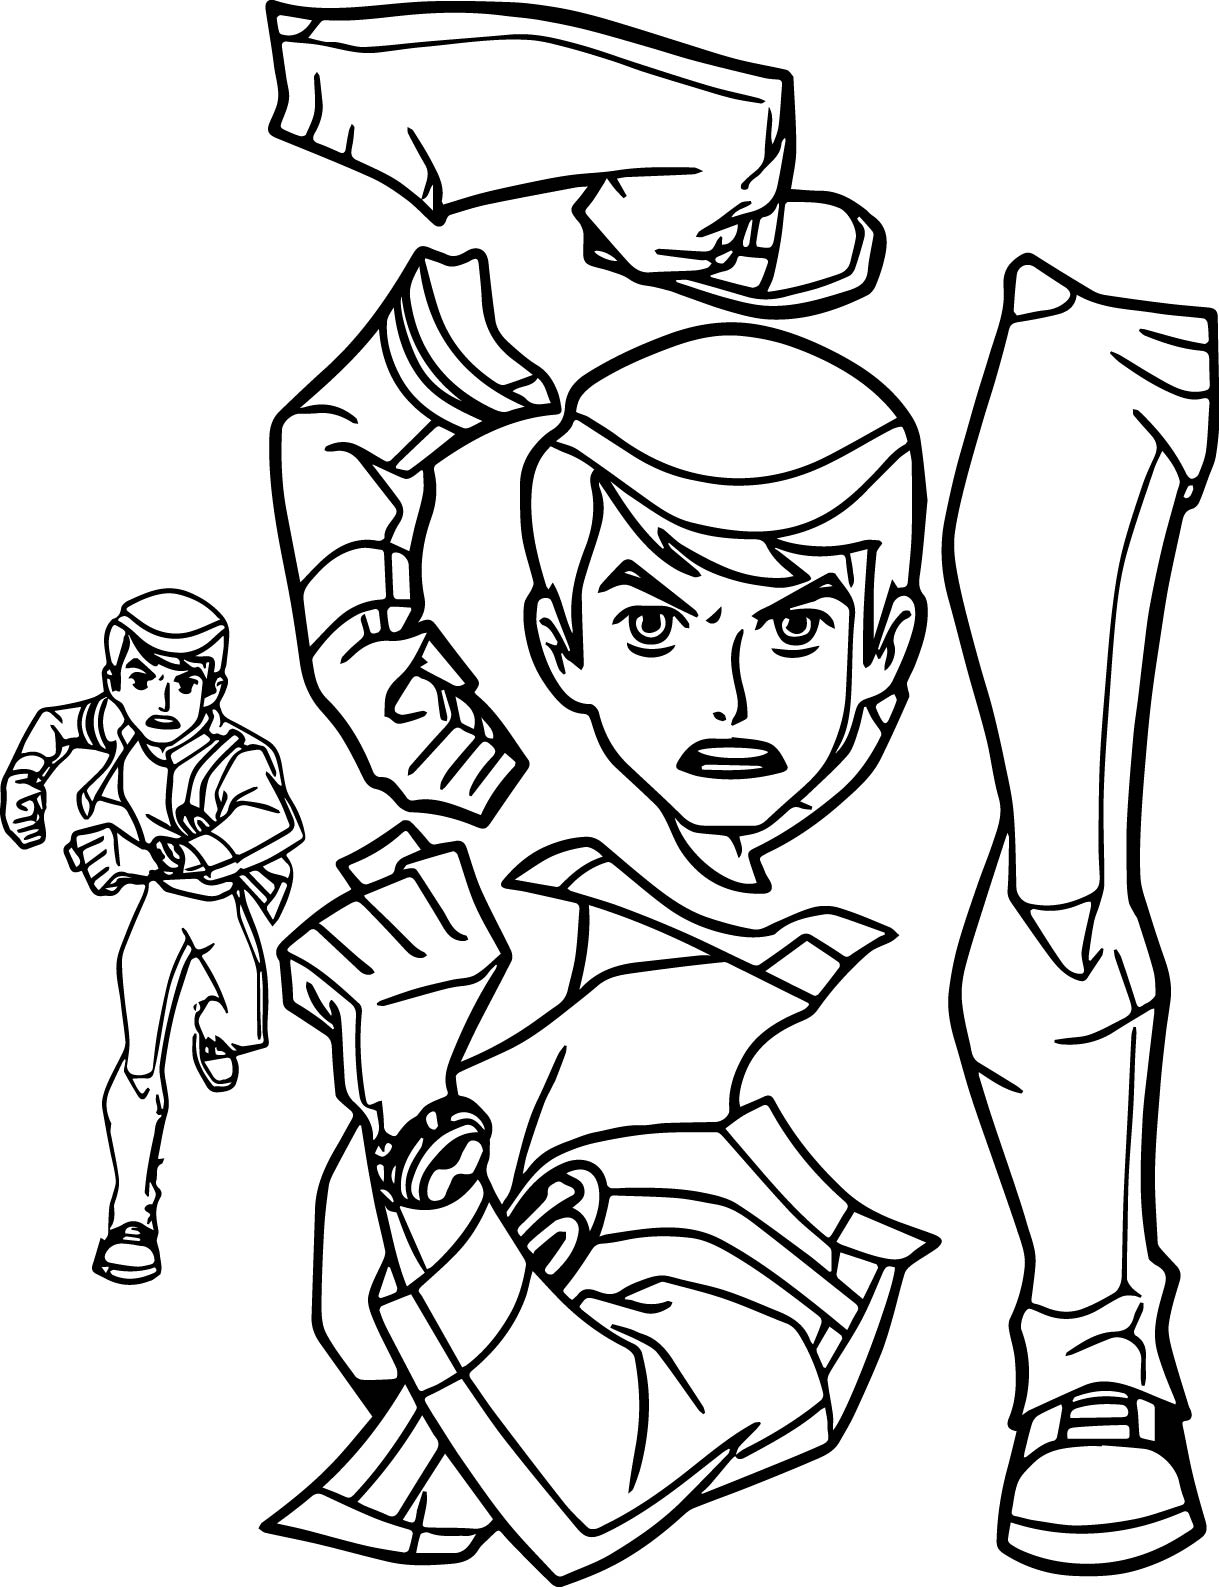 benten alien force giant part coloring page | wecoloringpage - Ben Ten Alien Force Coloring Pages